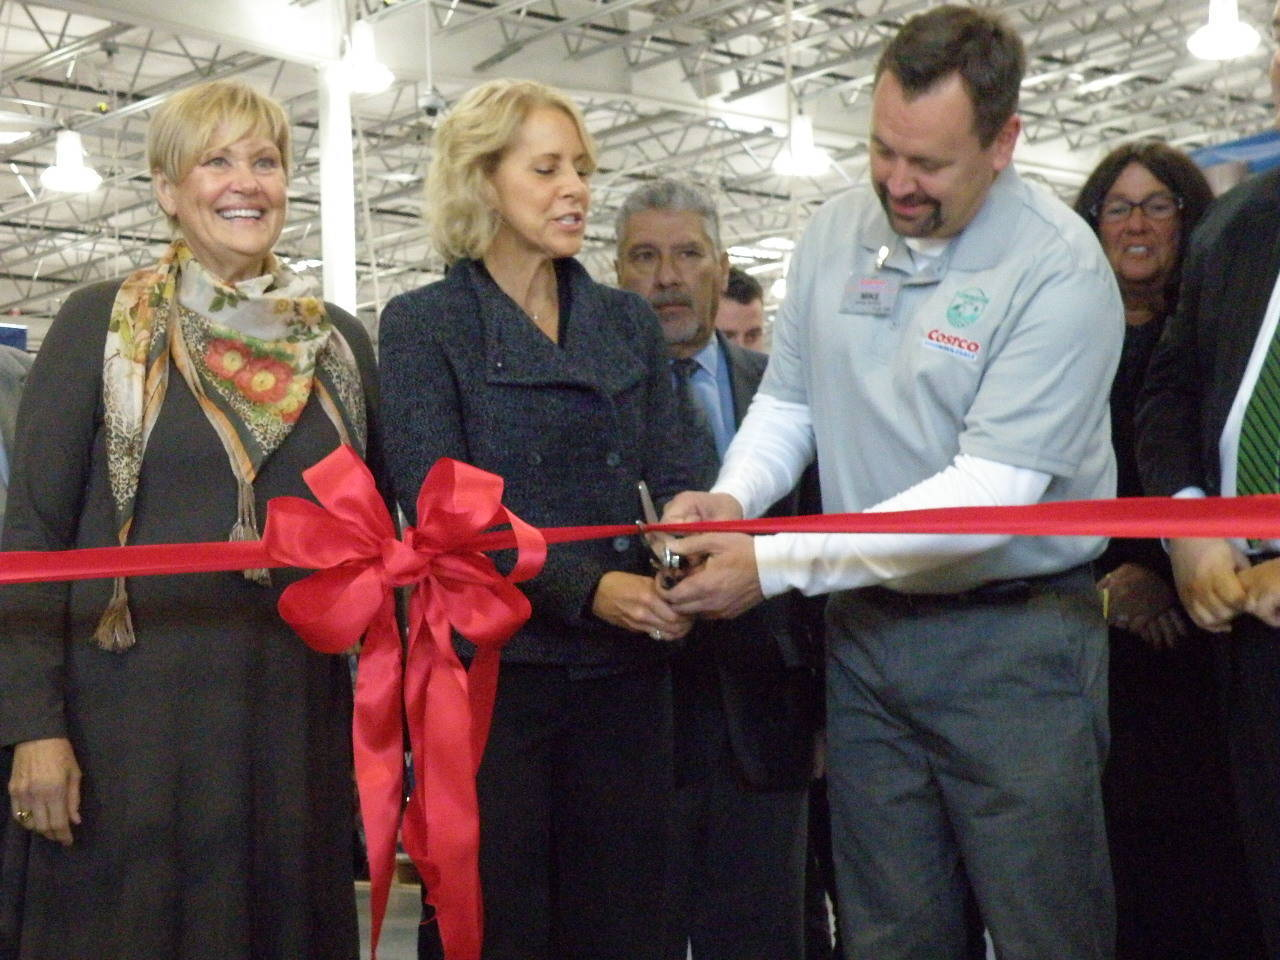 flemington s costco throws open its doors flemington raritan nj from left are hunterdon holder director suzanne lagay raritan township or karen gilbert and costco store manager mike liszewski as they cut the